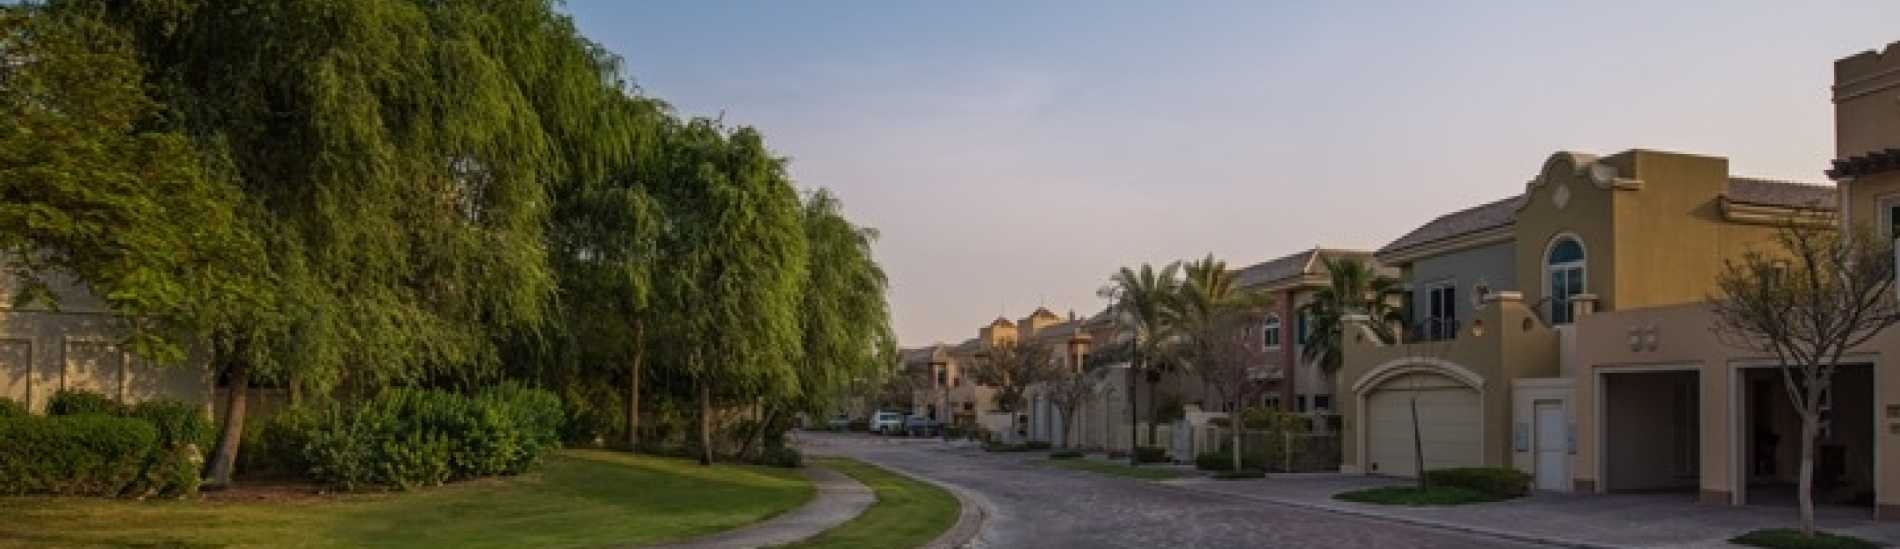 Dubai's Prime Investment Options Aren't In Prime Communities